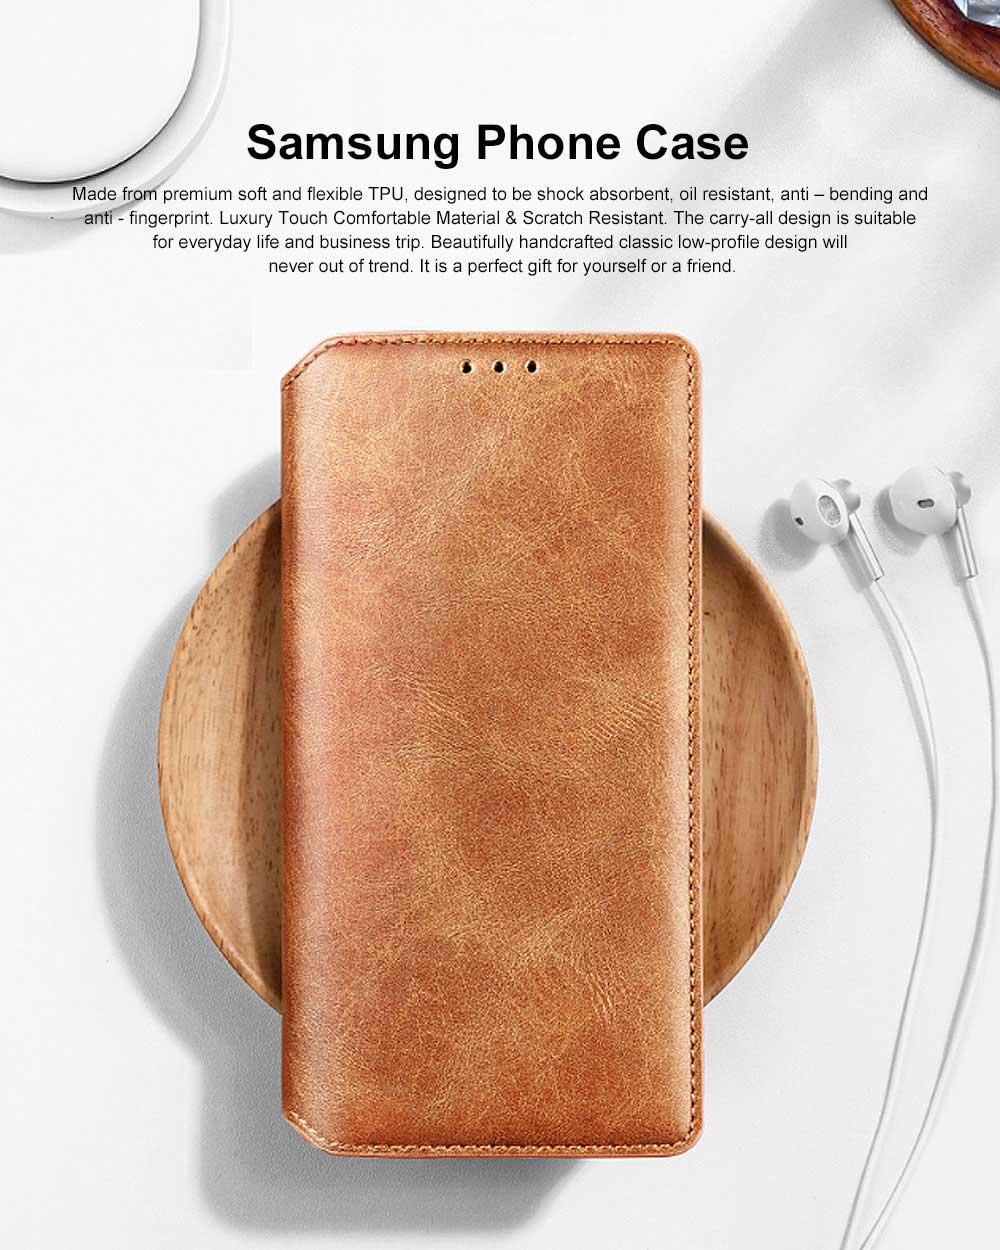 Soft TPU PU Leather Shockproof Protective Samsung Phone Case, Flip Case with Card Slot Samsung Soft Phone Cover for Samsung Galaxy Note 9, S9 plus, S9, S10, S10 plus, S10E, S10 Lite 0